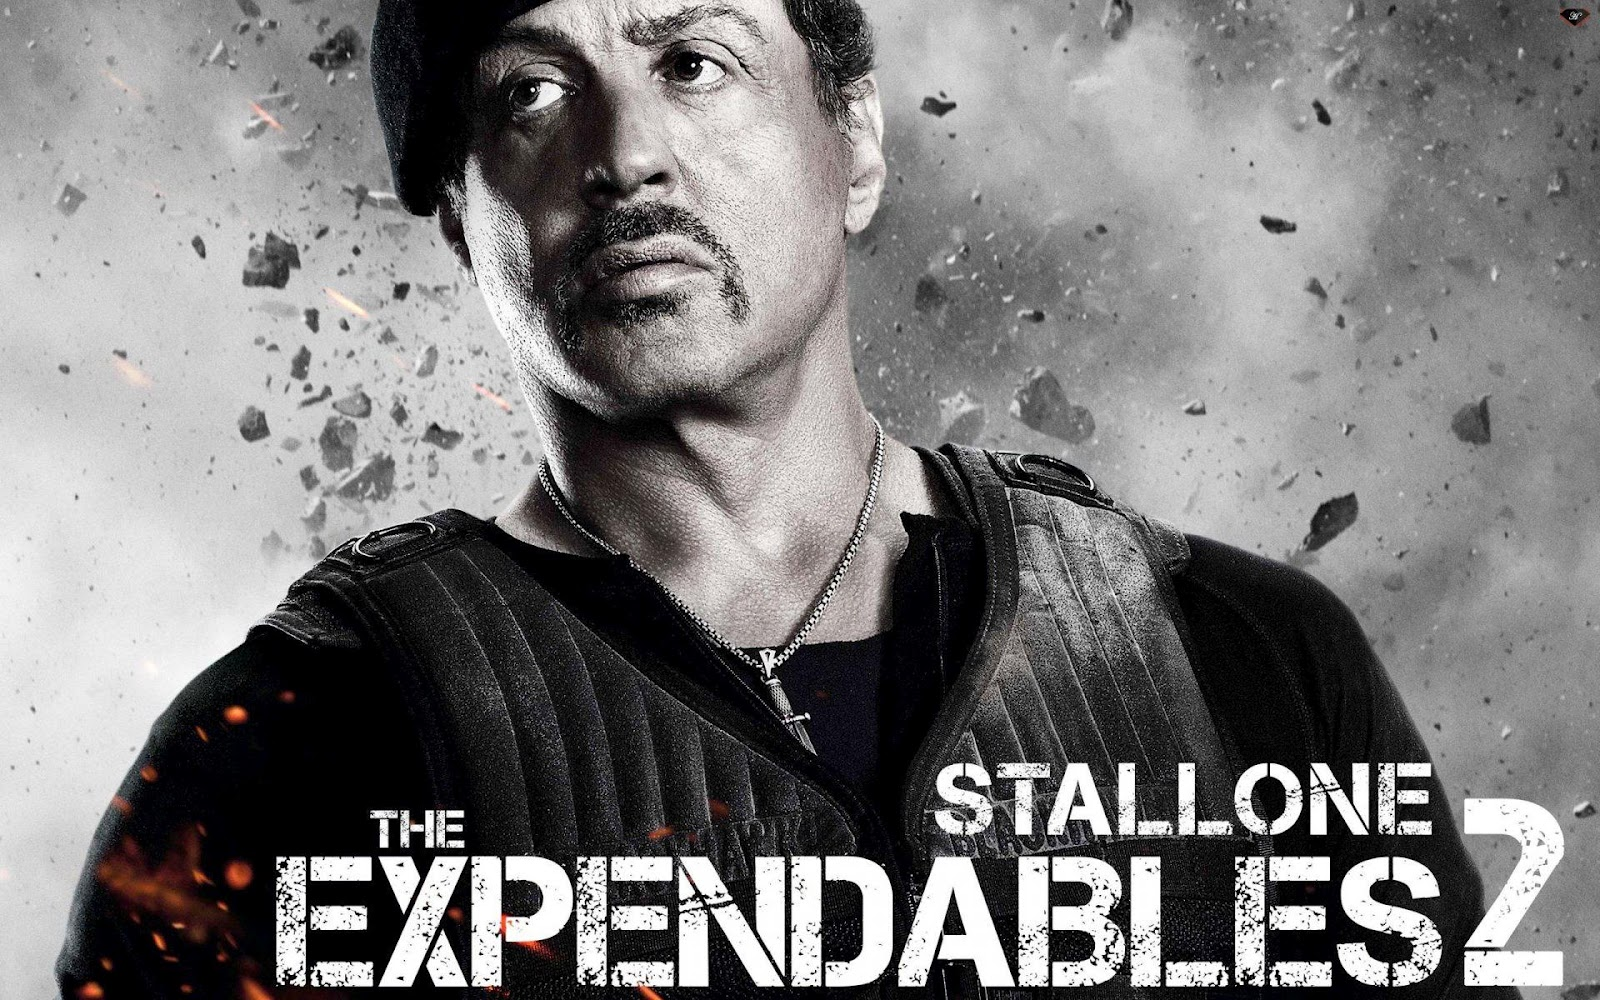 Stallone The Expendables 2 HD Wallpapers | Hd Wallpaper